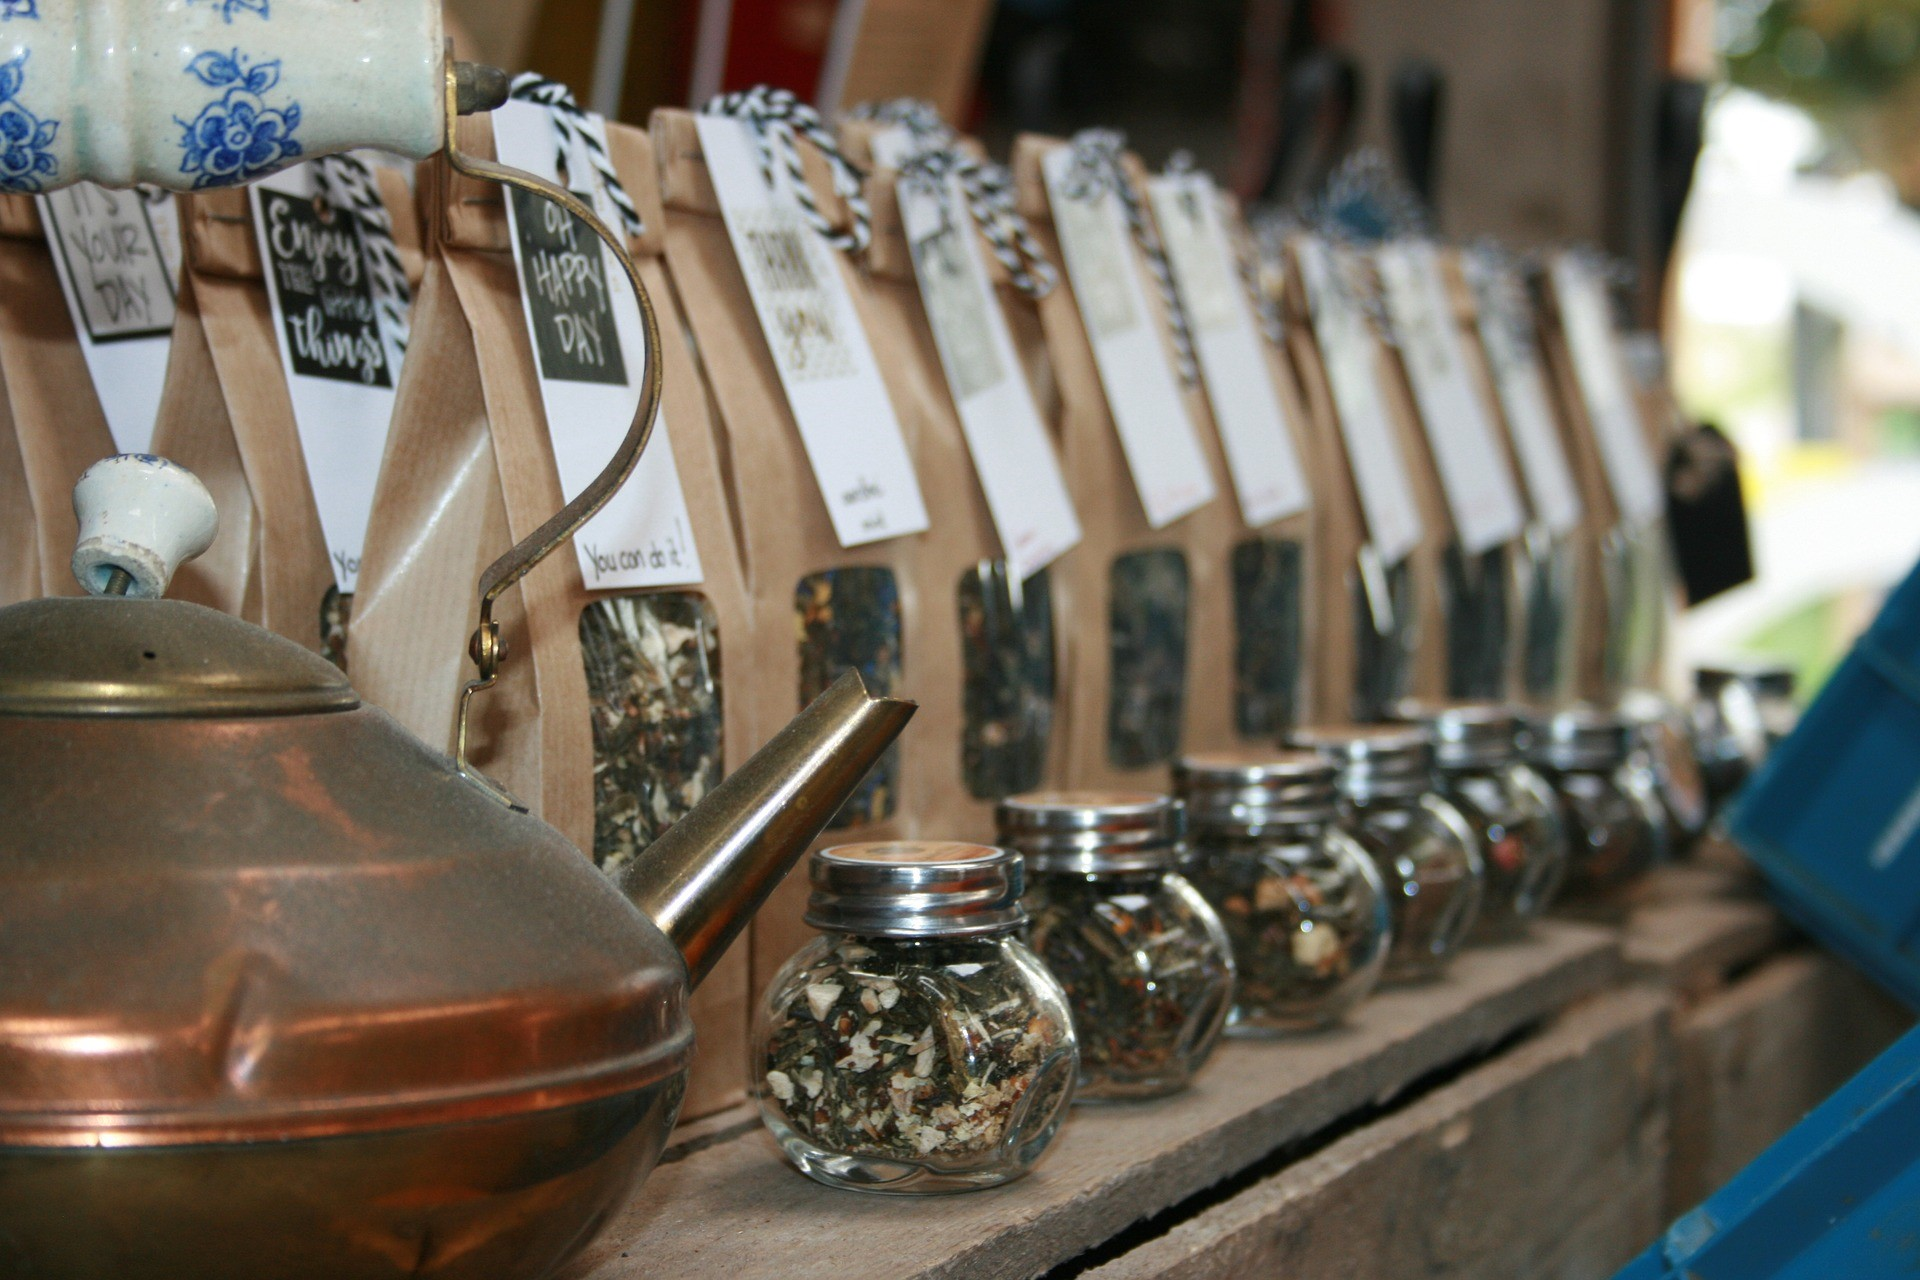 Expertly blended teas from Cotswolds Hampers